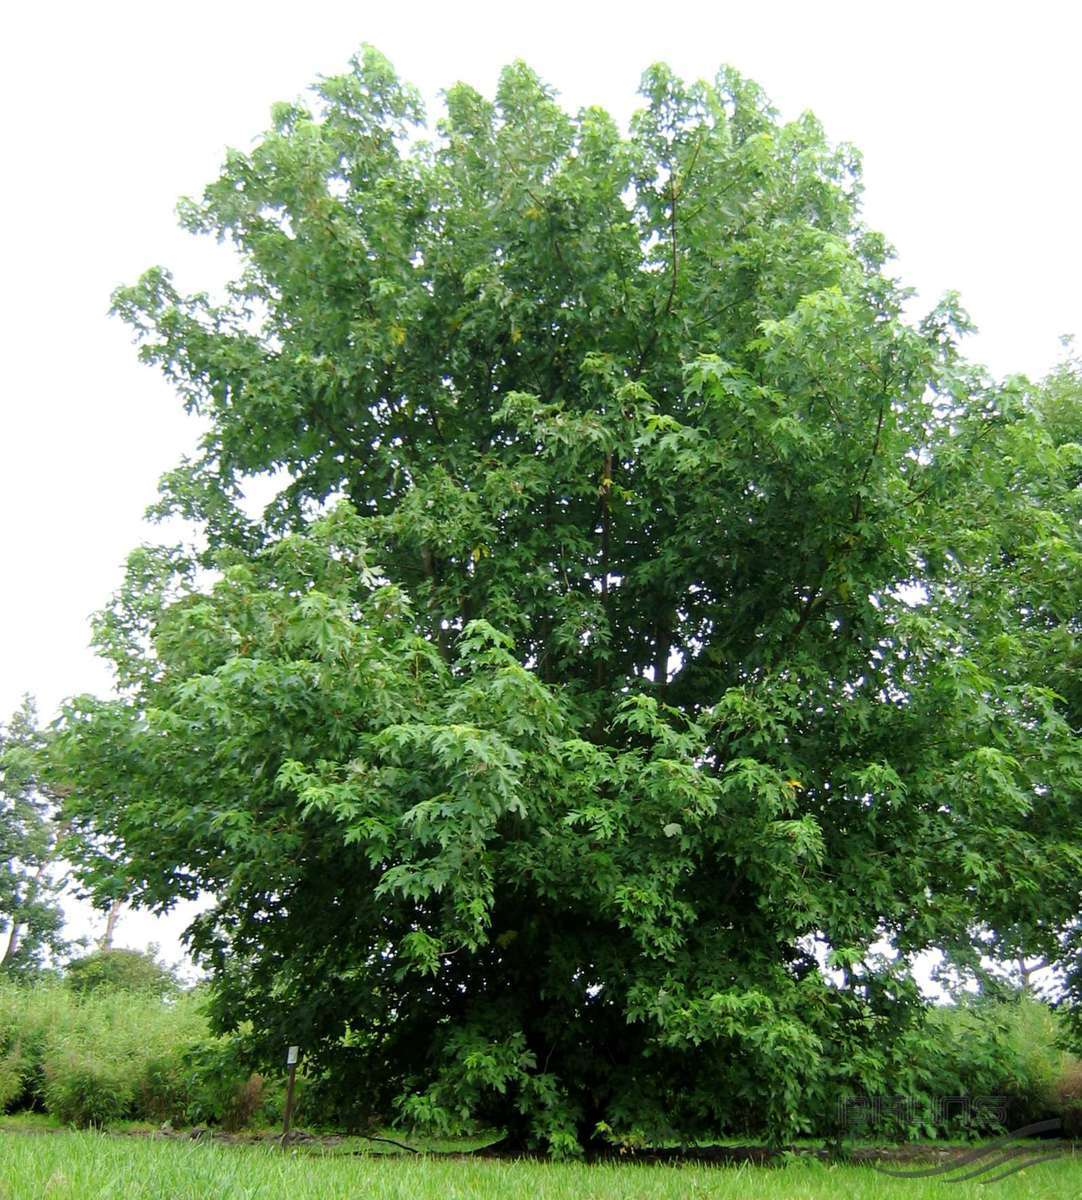 - Acer saccharinumsilver maple